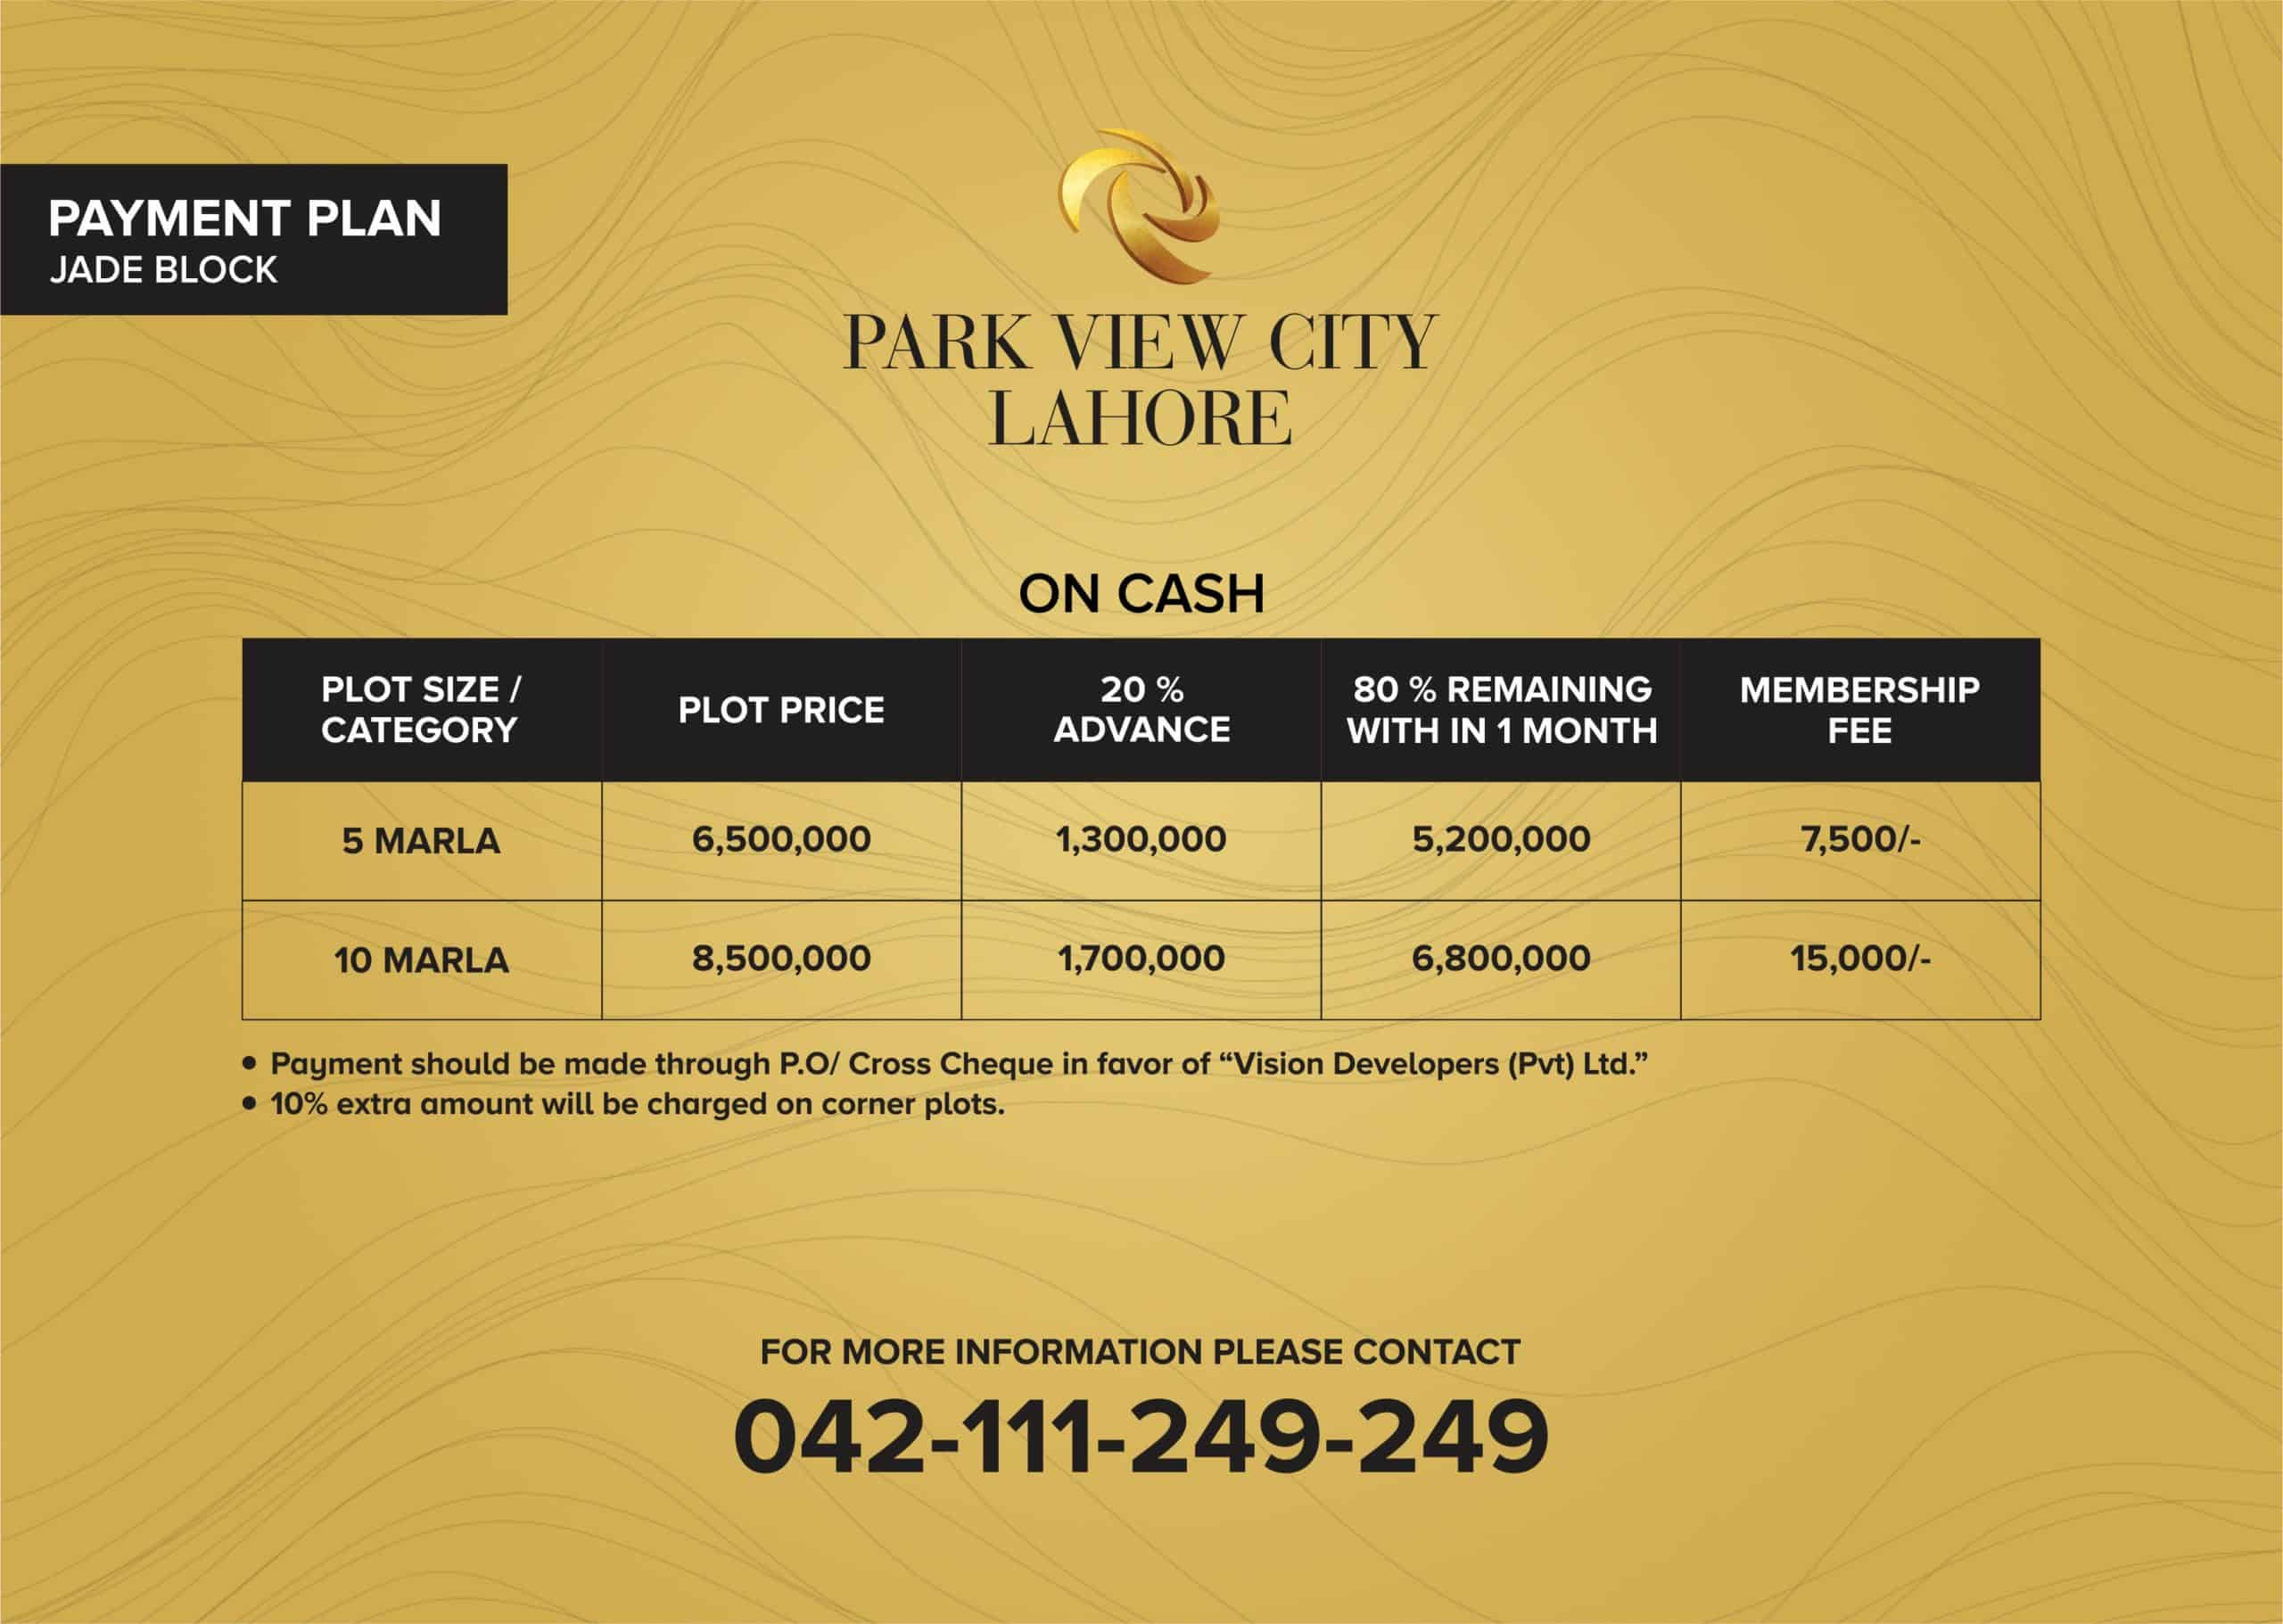 PAYMENT-PLAN-PVCL-JADE-BLOCK-scaled-1